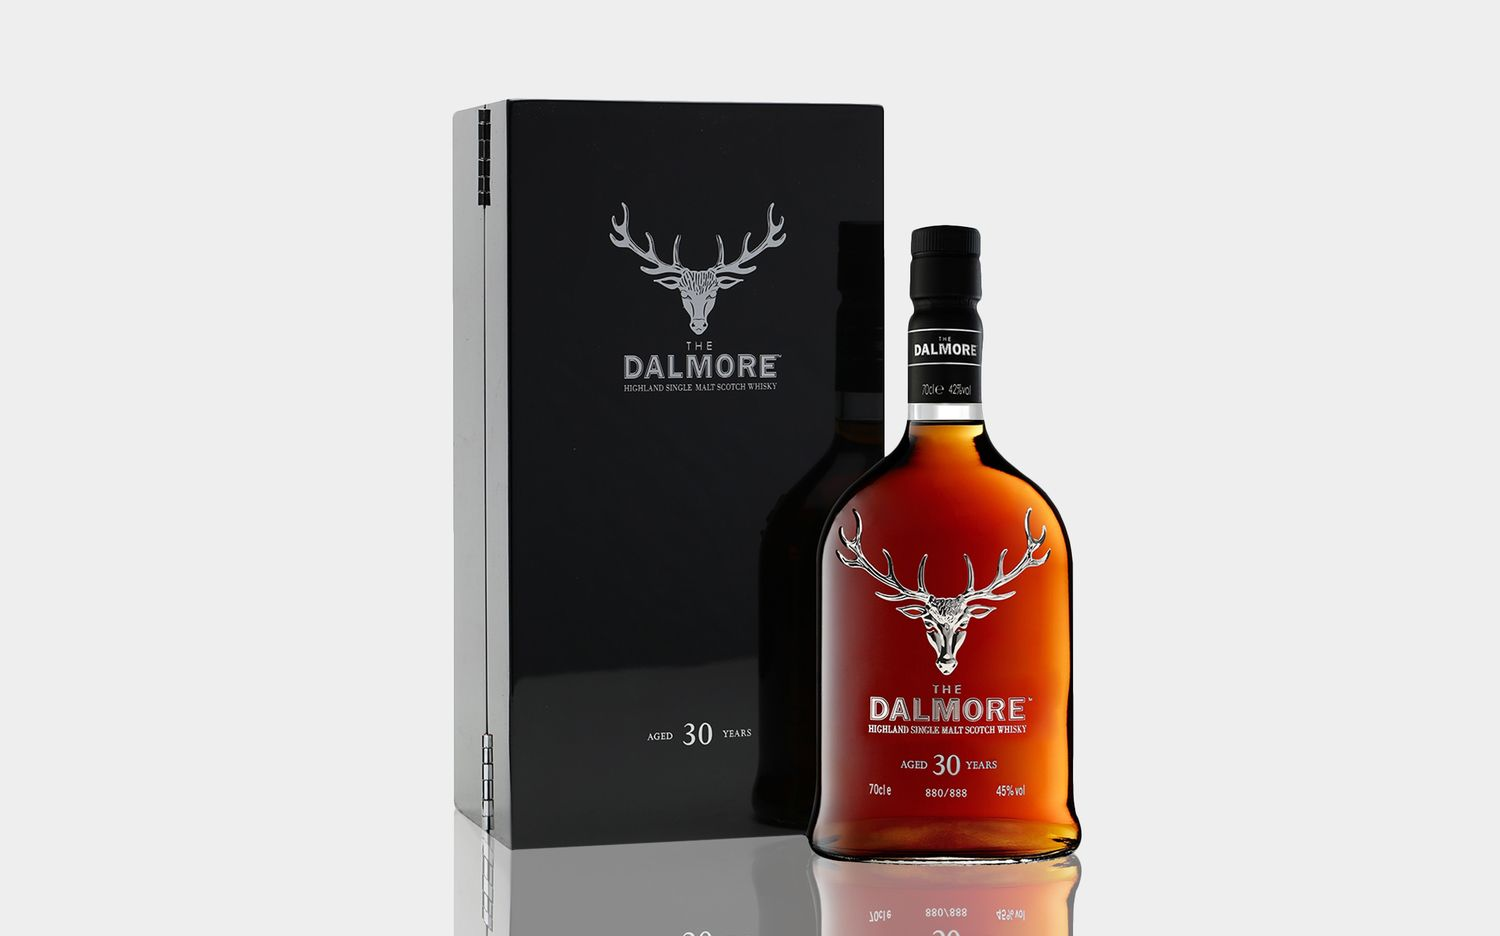 The Dalmore Limited Release — The Dieline - Branding & Packaging